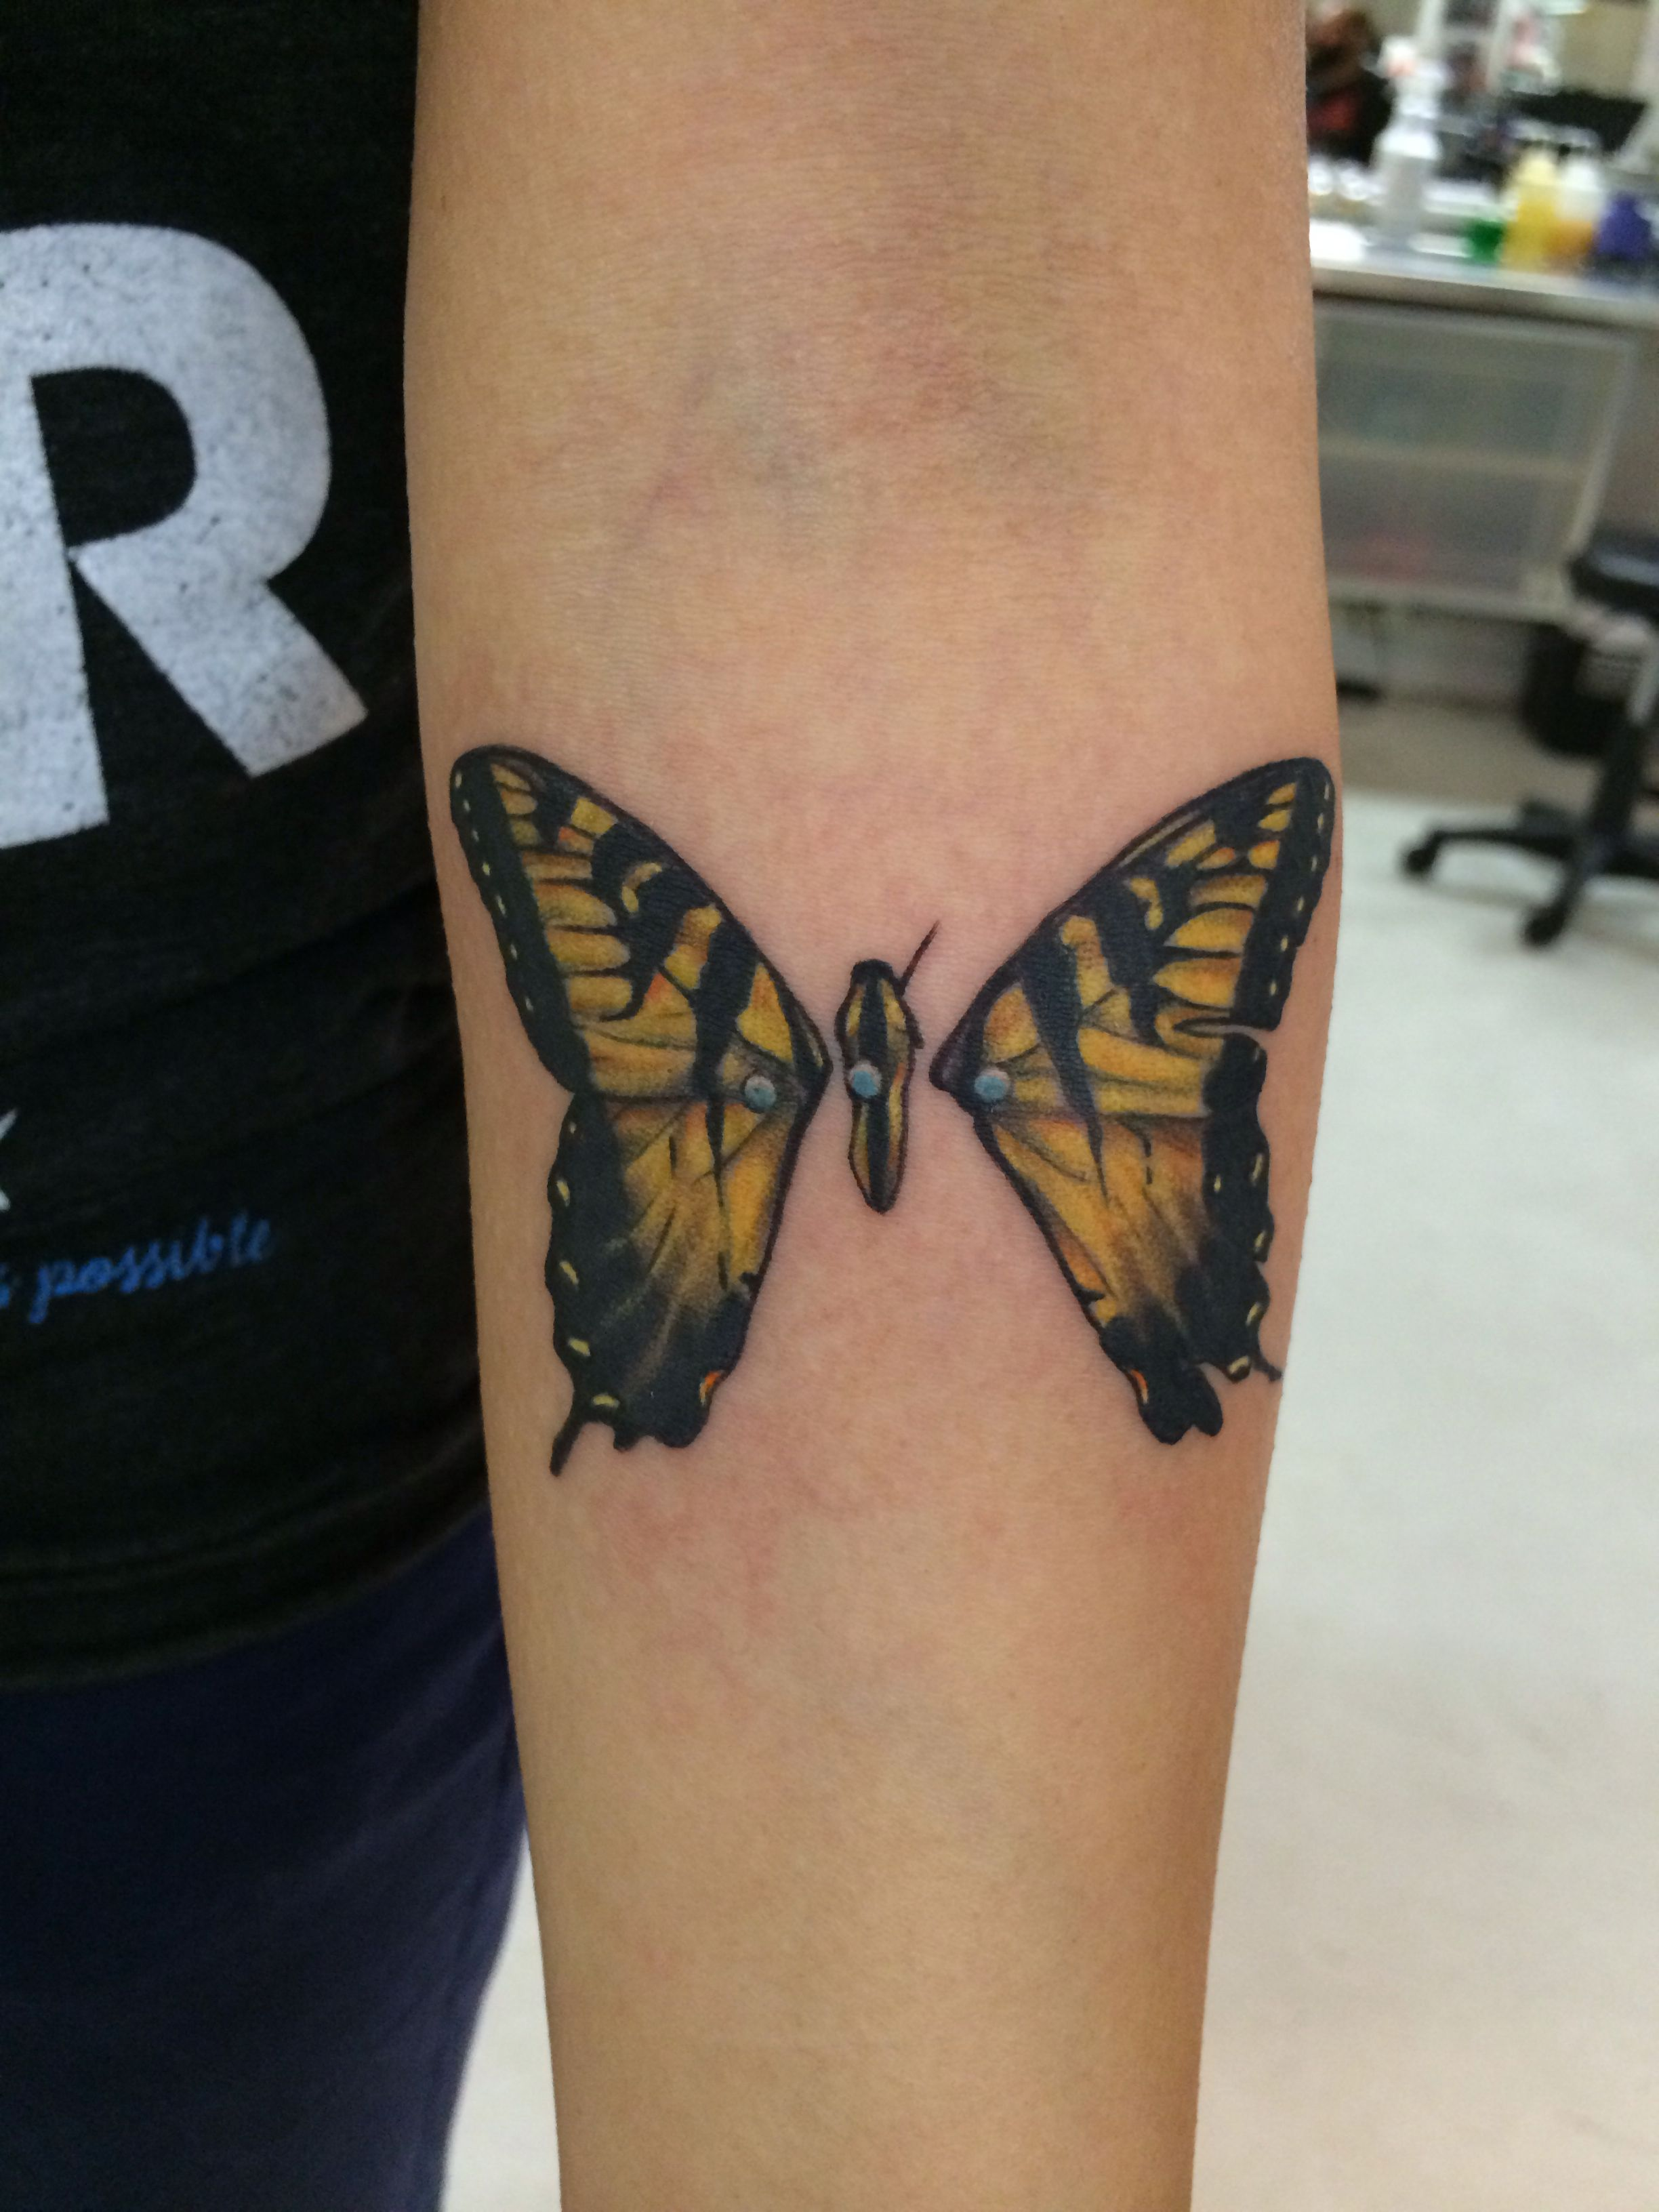 got inked with a paramore tattoo brand new eyes tattoos pinterest tatuagens e divers o. Black Bedroom Furniture Sets. Home Design Ideas